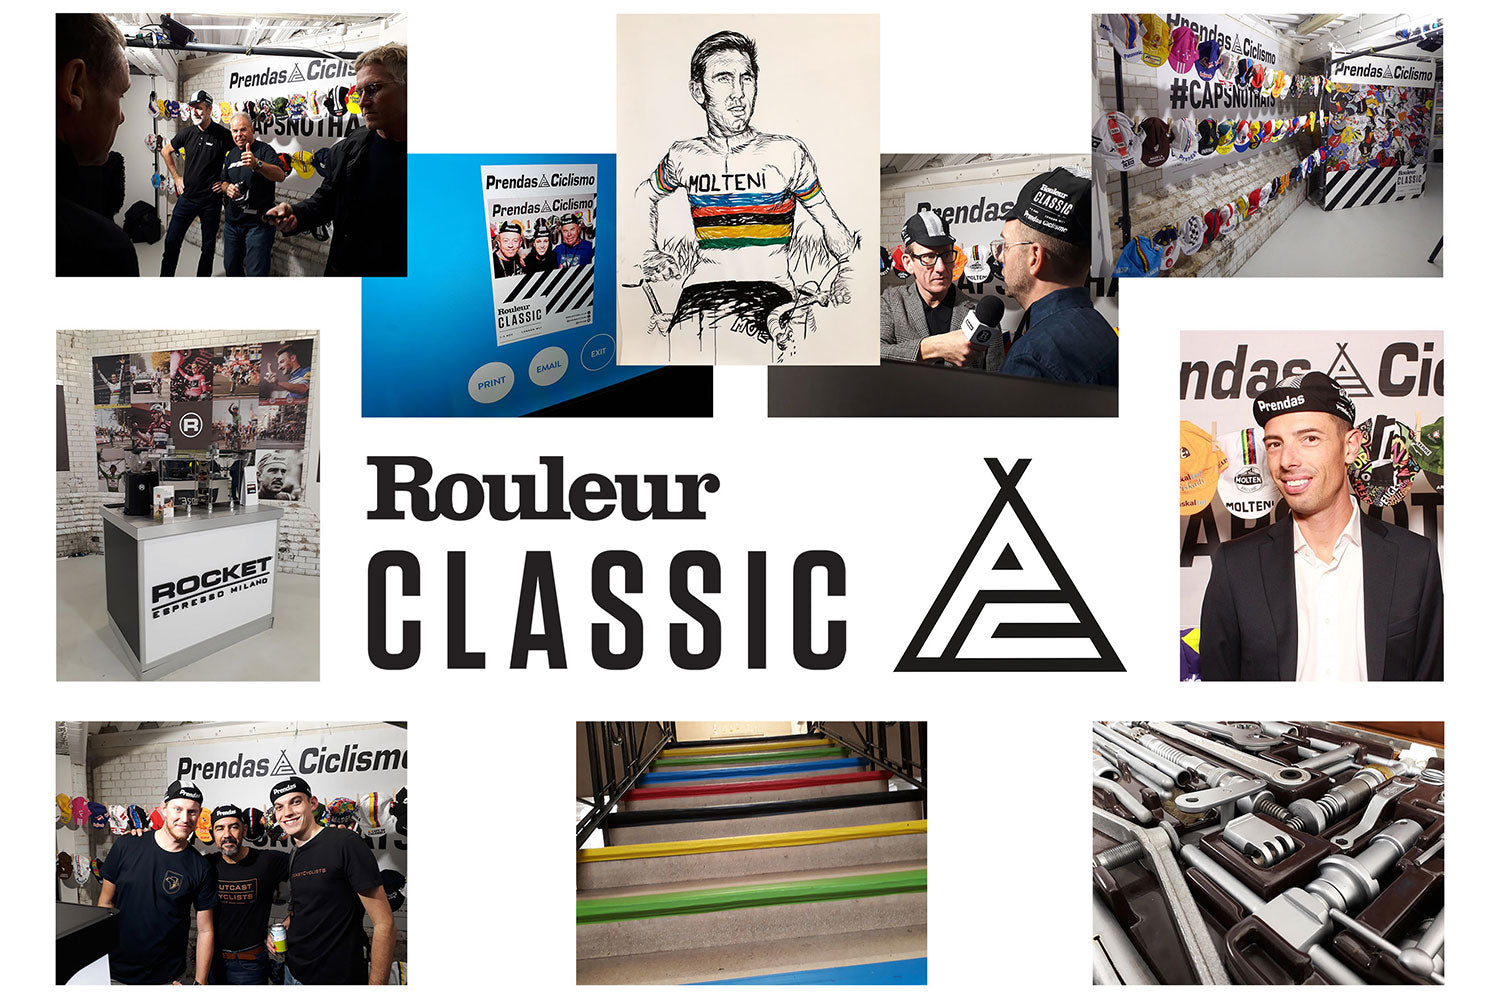 Bringing the Prendas cycling caps to the 2018 Rouleur Classic